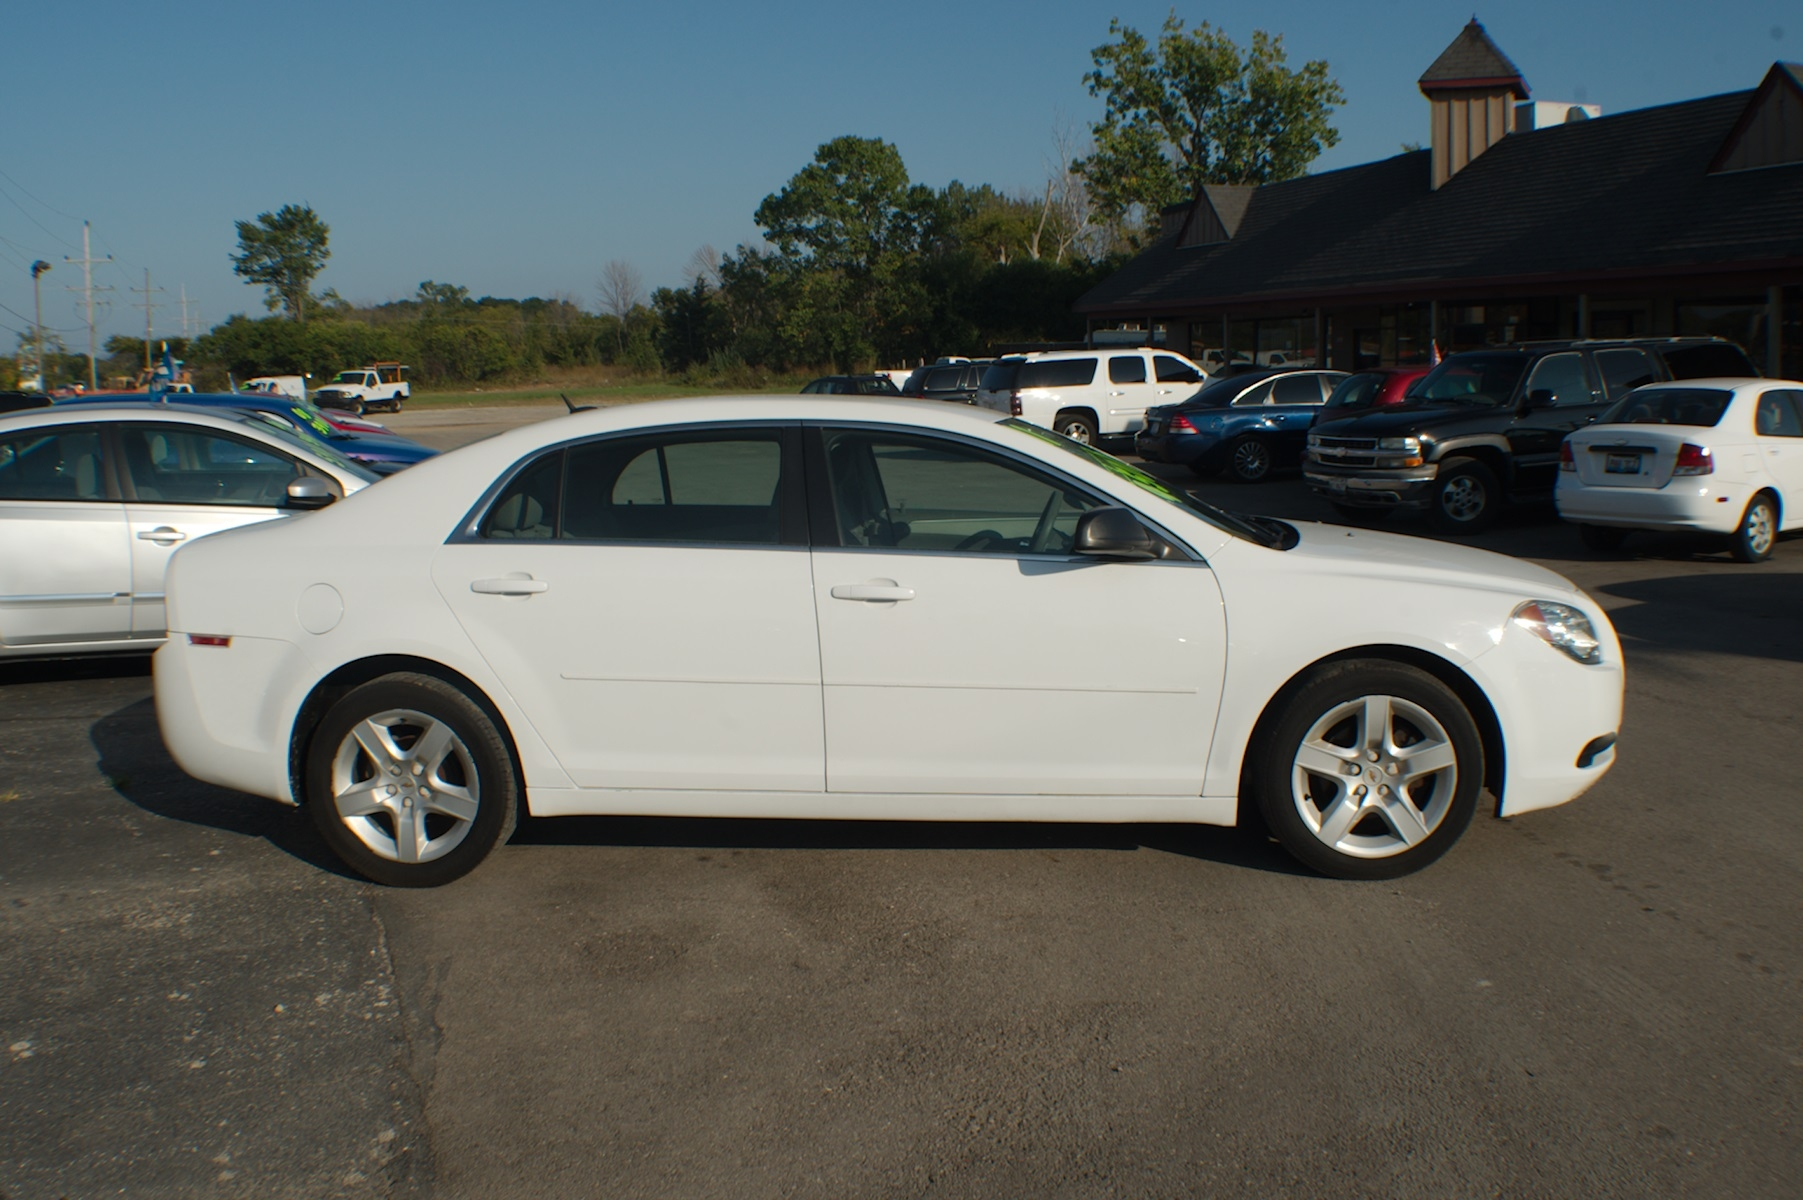 2011 Chevrolet Malibu White Sedan Used Car Sale Bannockburn Barrington Beach Park